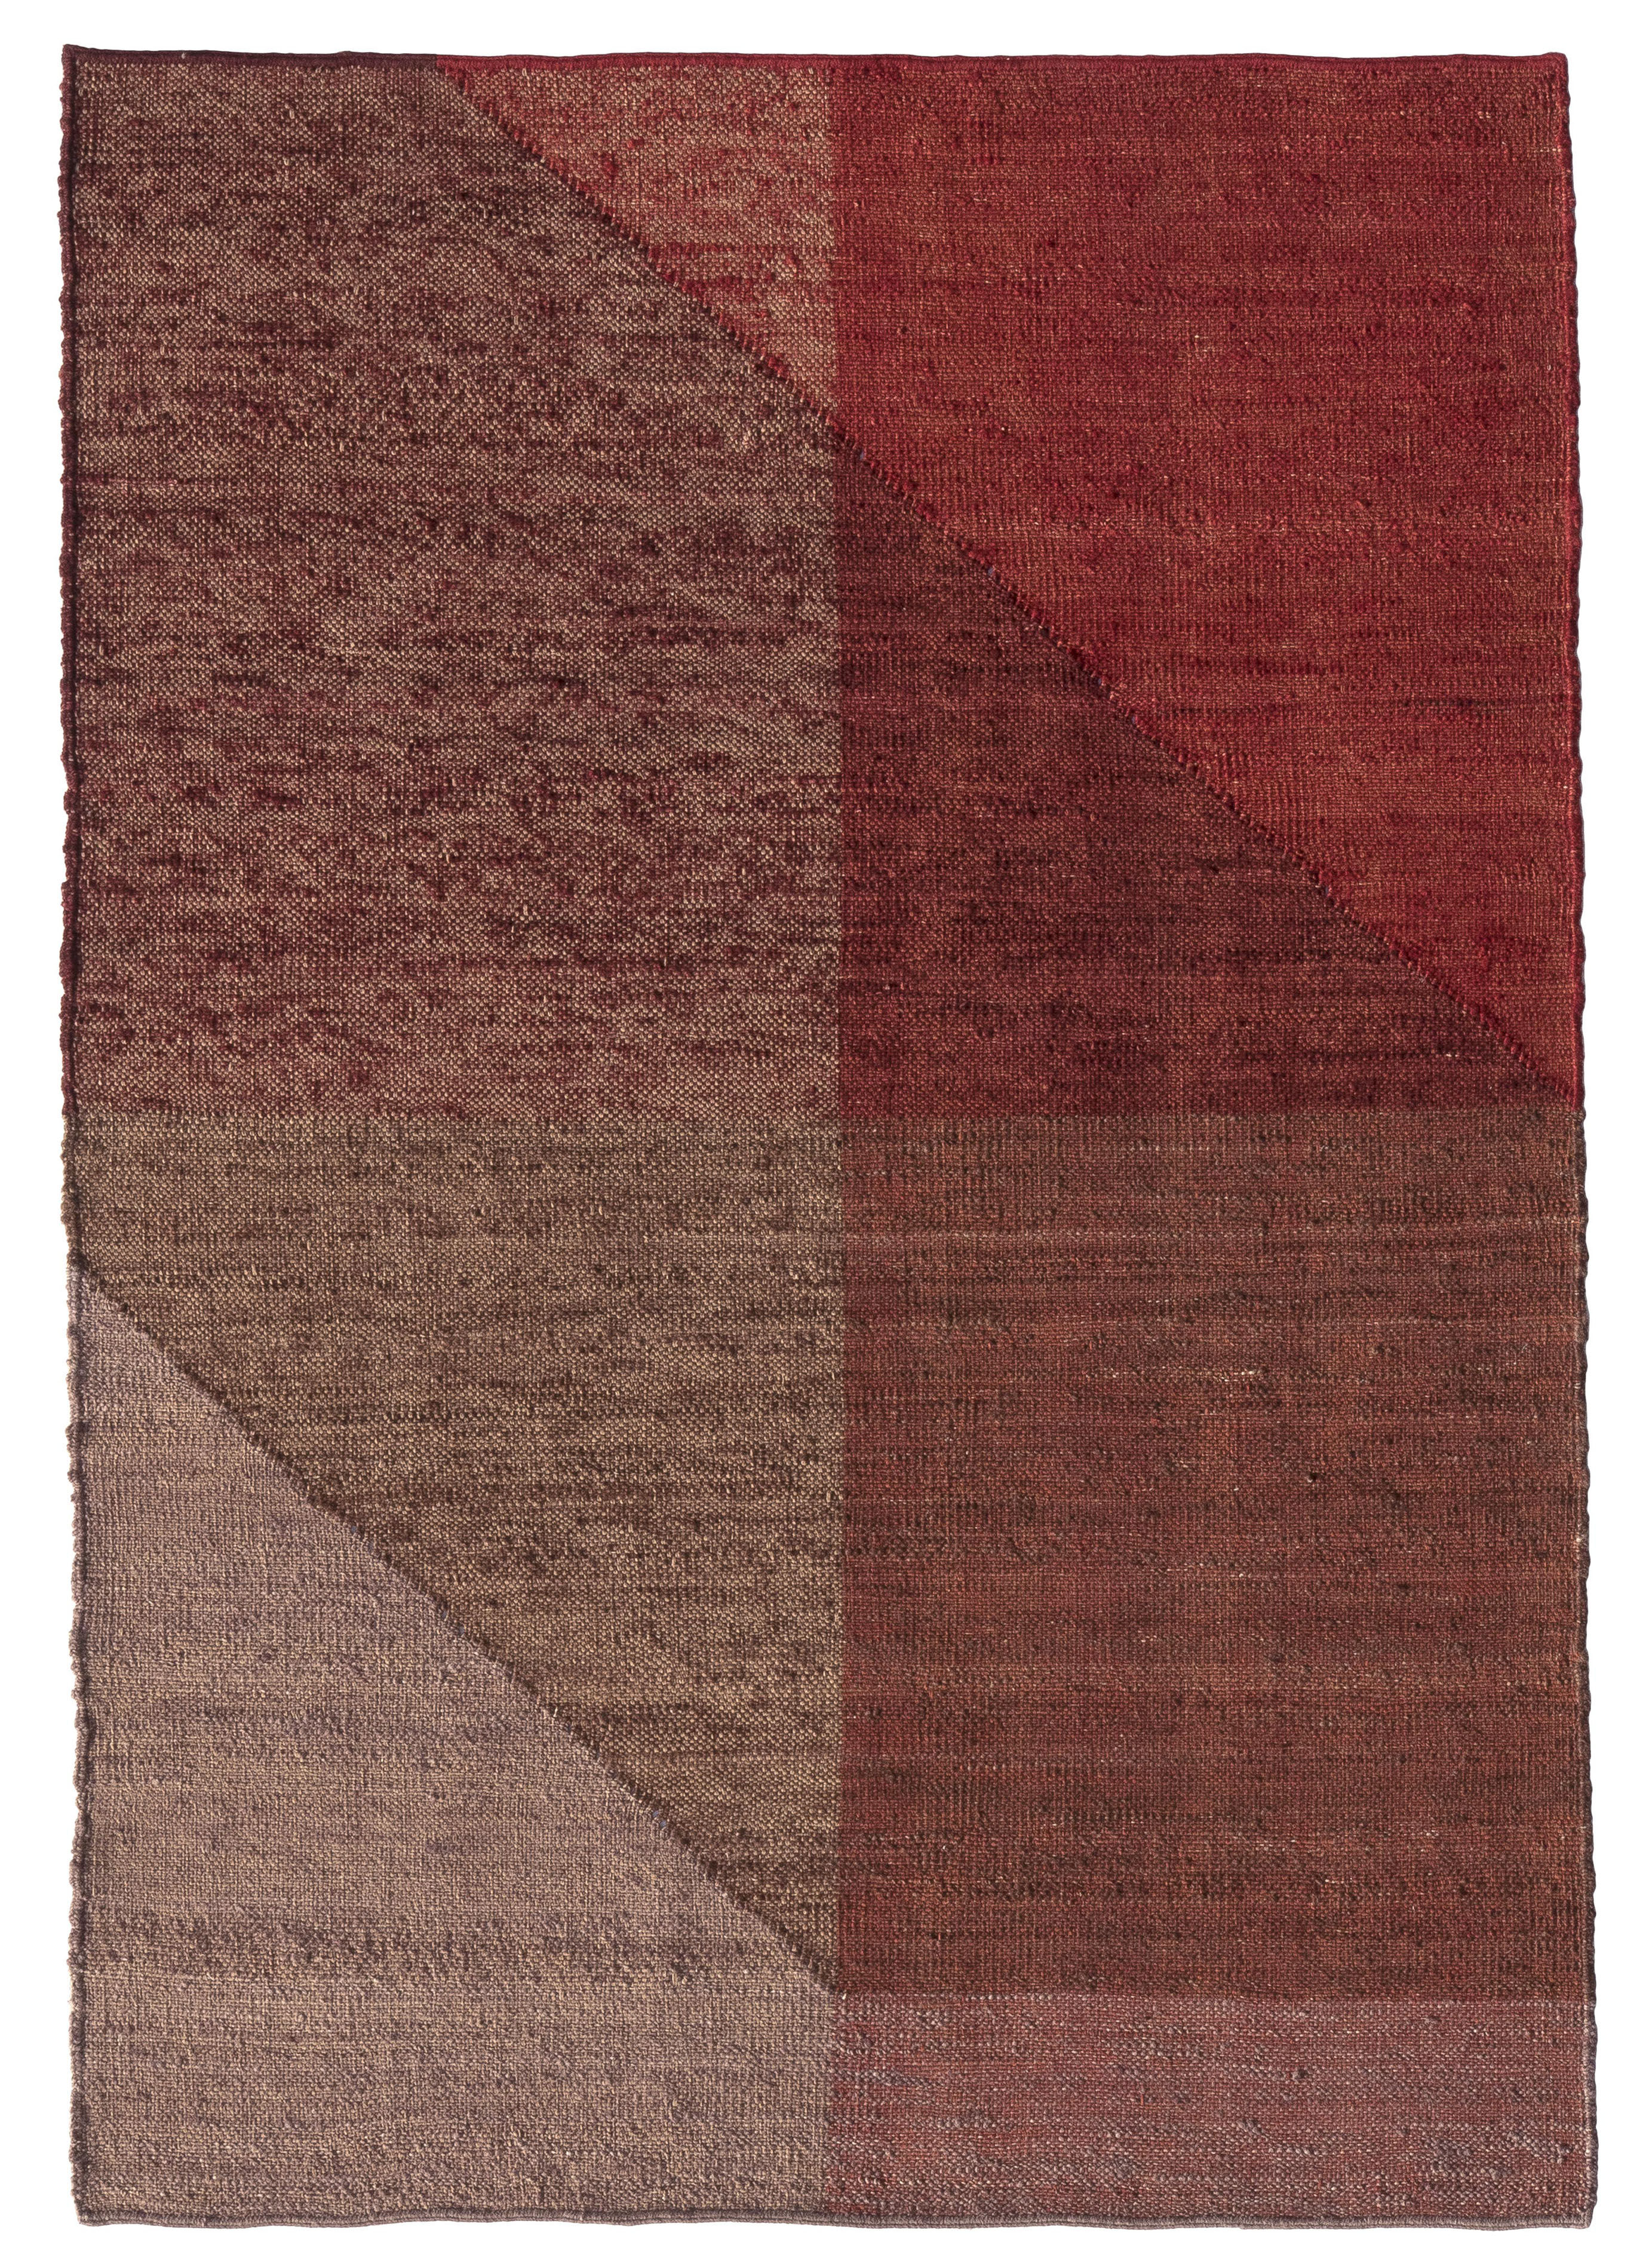 Decoration - Rugs - Capas 1 Rug - / 200 x 300 cm by Nanimarquina - Red - Wool